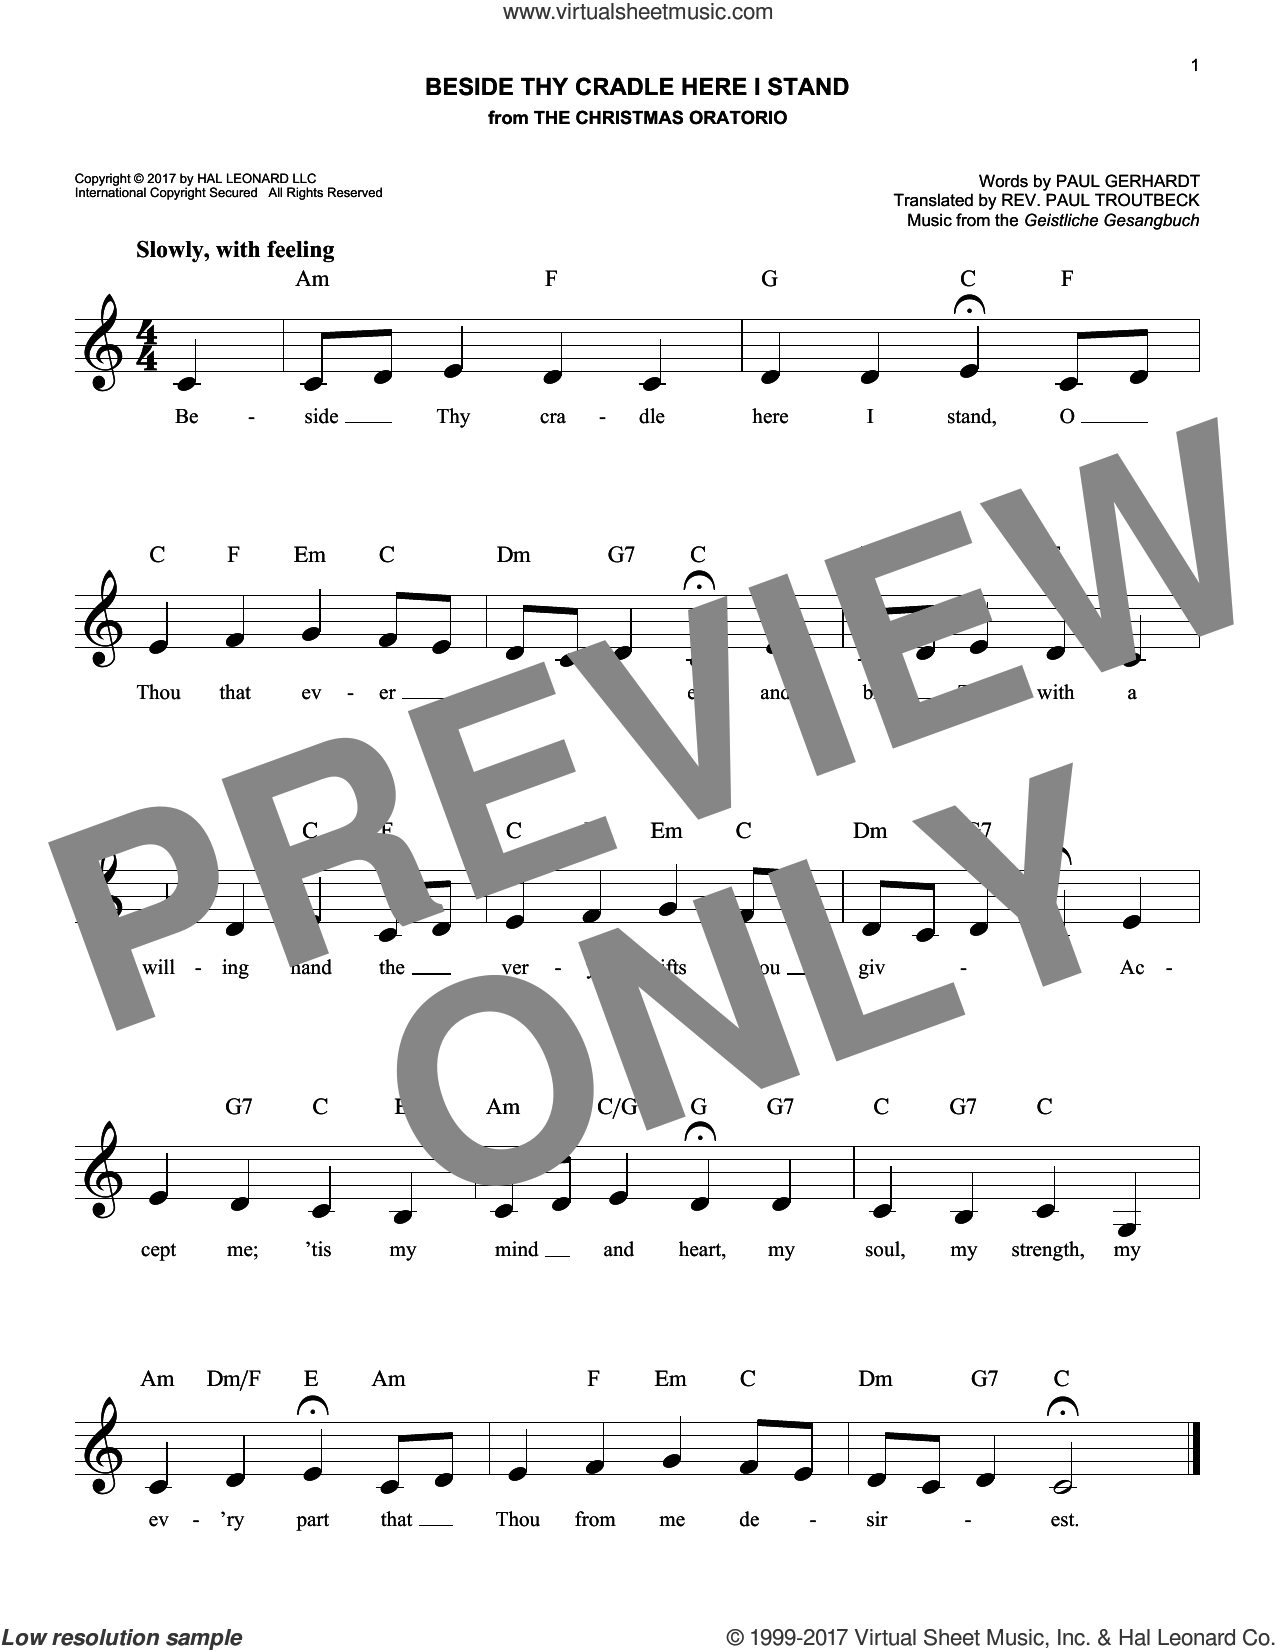 Beside Thy Cradle Here I Stand sheet music for voice and other instruments (fake book) by Paul Gerhardt and Geistliche Gesangbuch, intermediate skill level